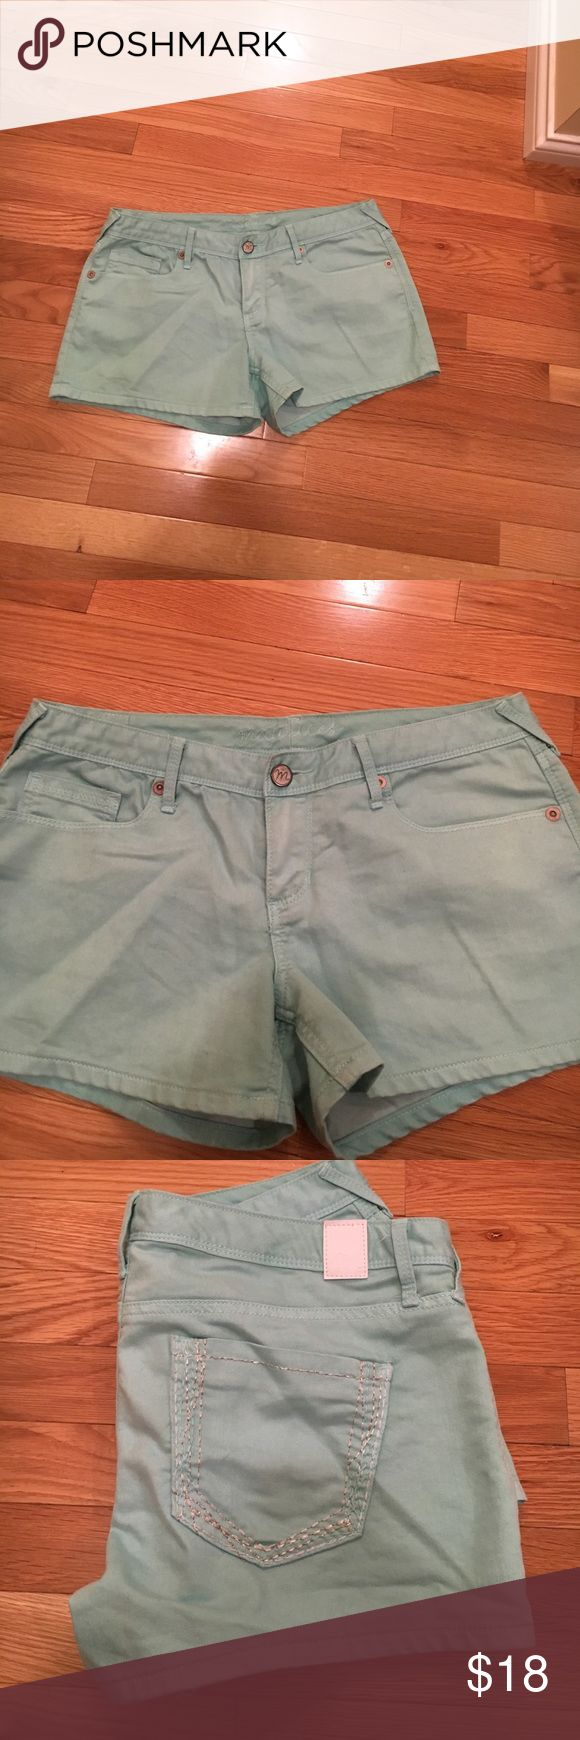 Mint shorts Maurices mint shorts with silver stitch  11/12- great condition Maurices Shorts Jean Shorts